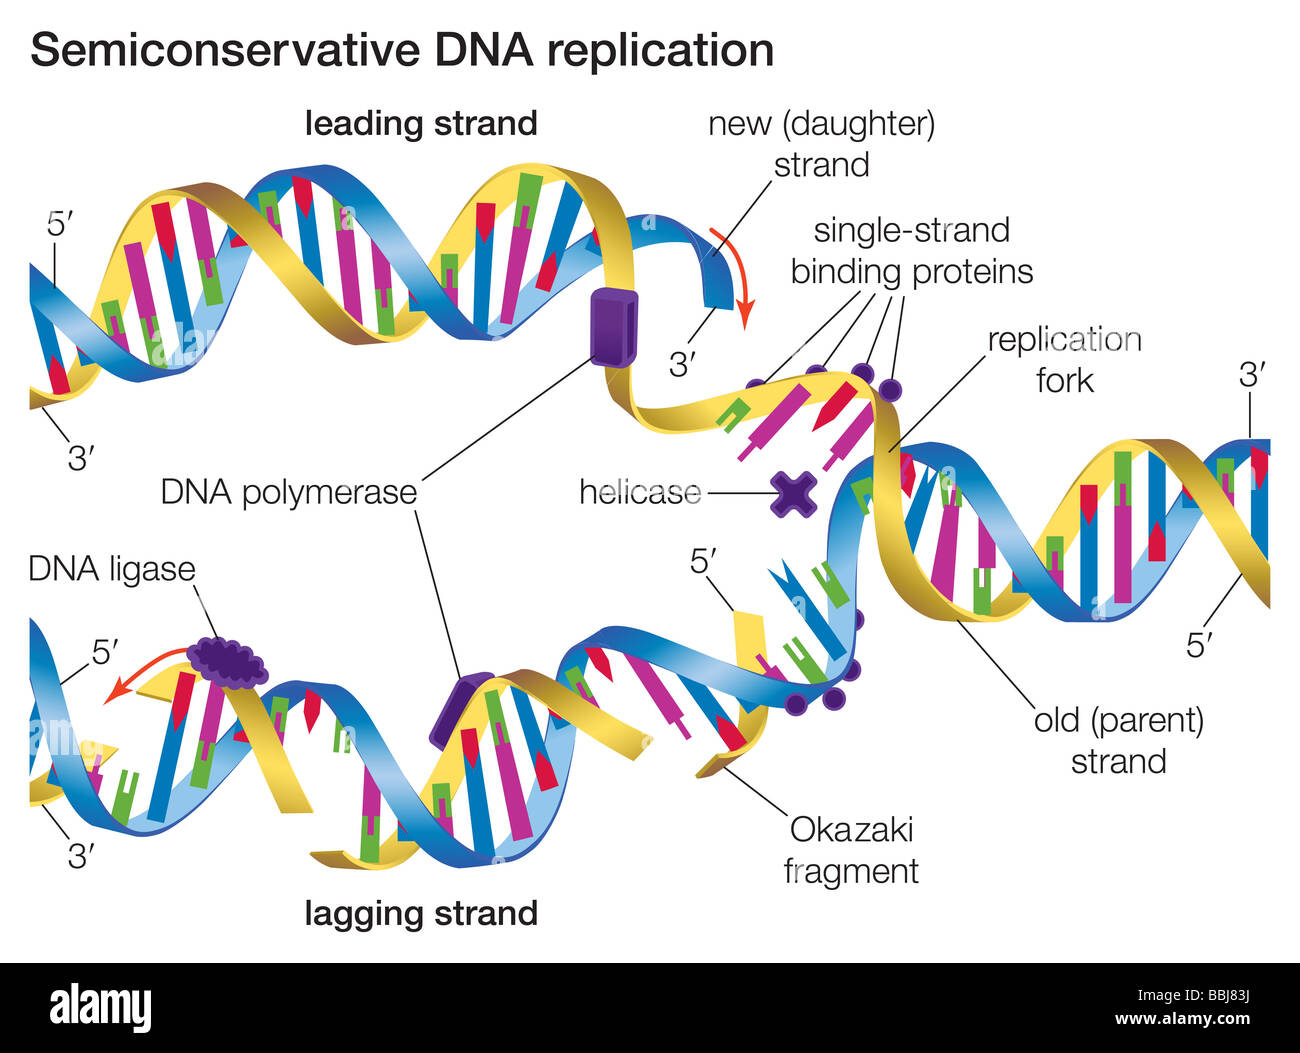 In Semiconservative Dna Replication An Existing Dna